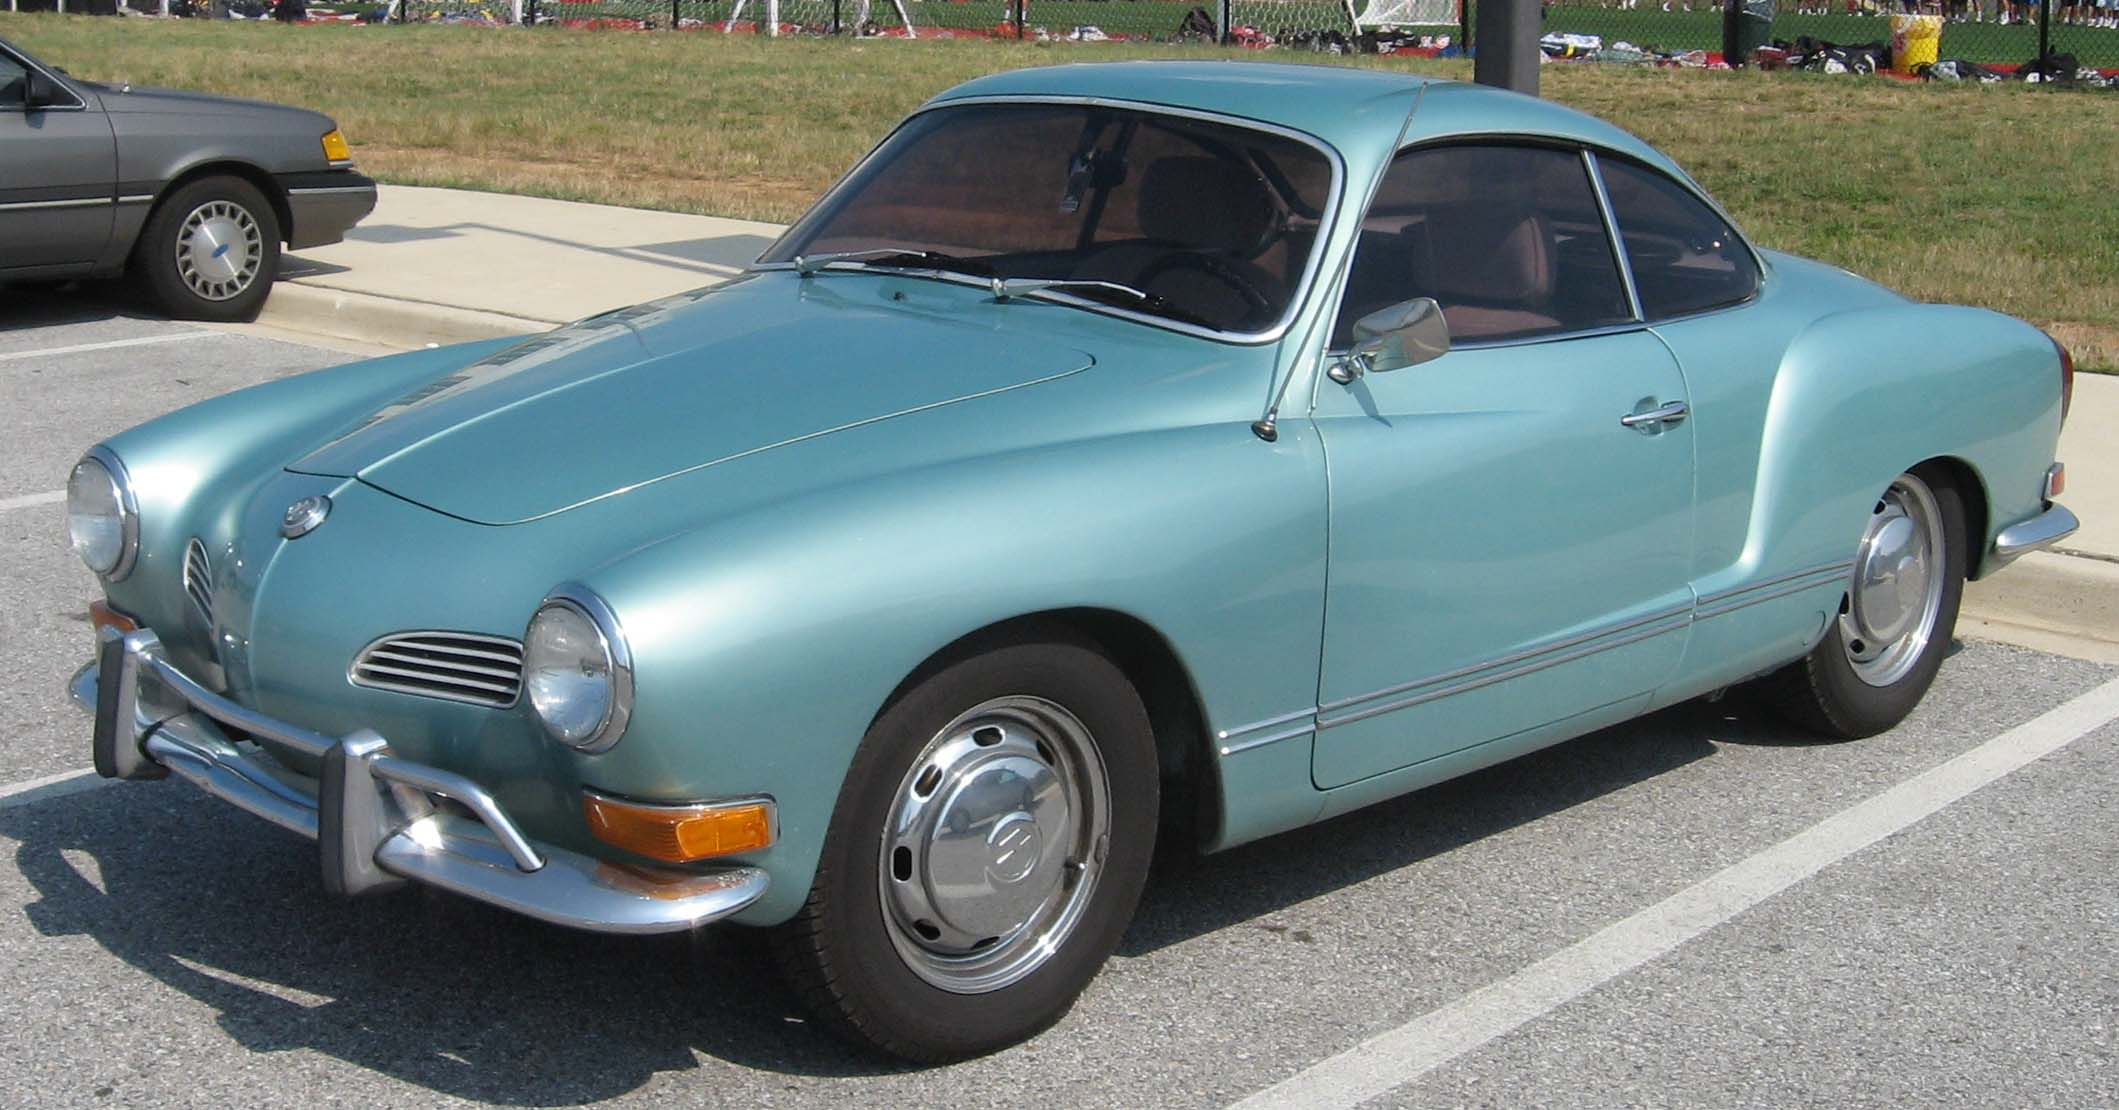 Karmann-Ghia-coupe.jpg